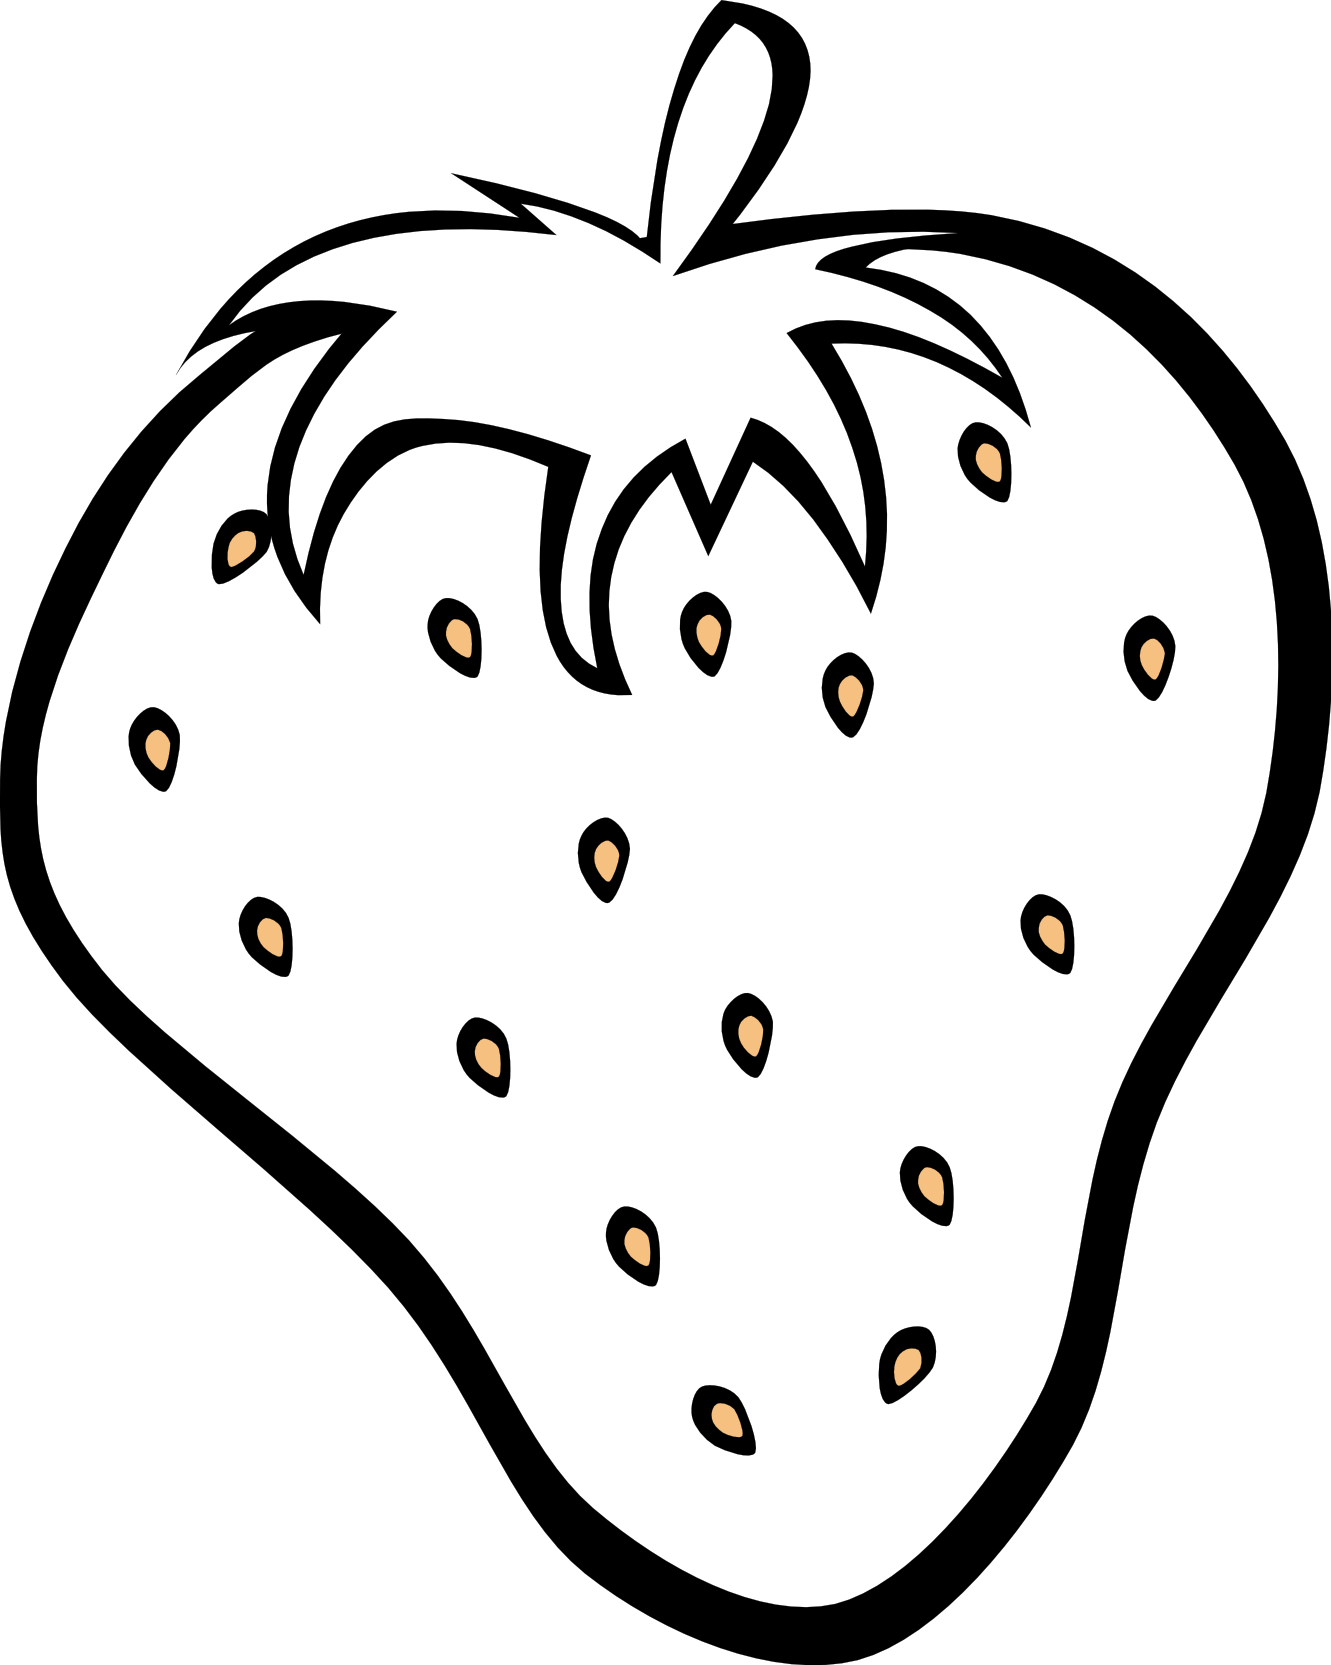 black and white fruit clipart - PNG Vegetables And Fruits Black And White